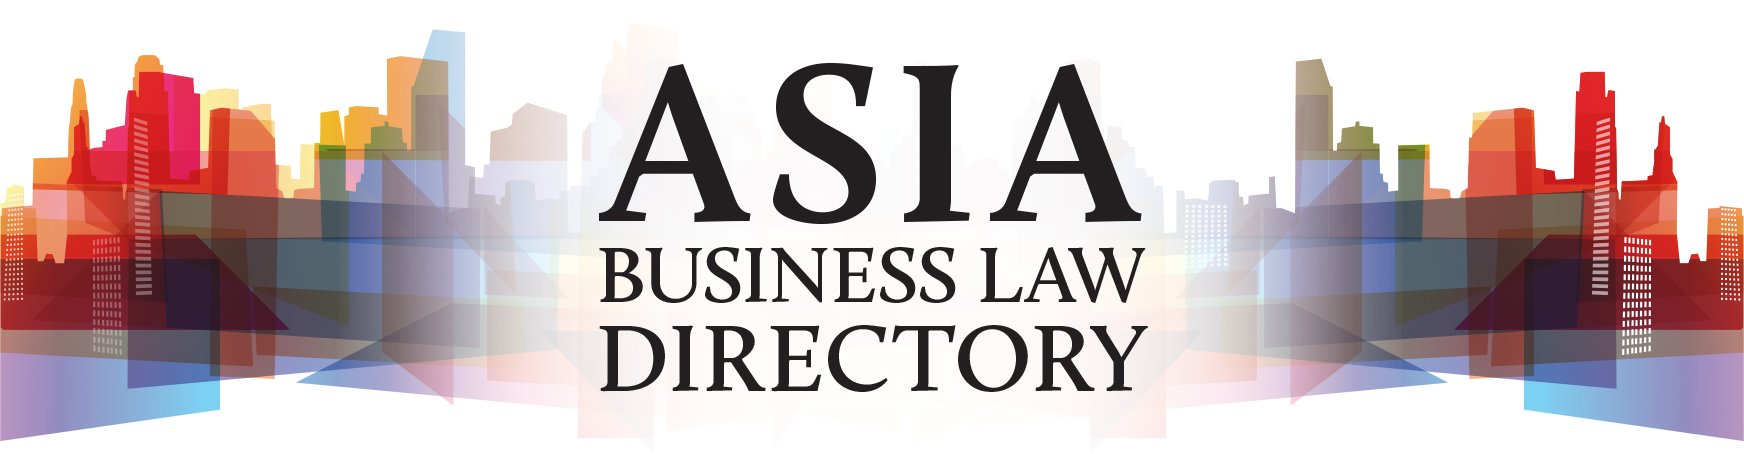 Was asian business directory for houston texas amusing